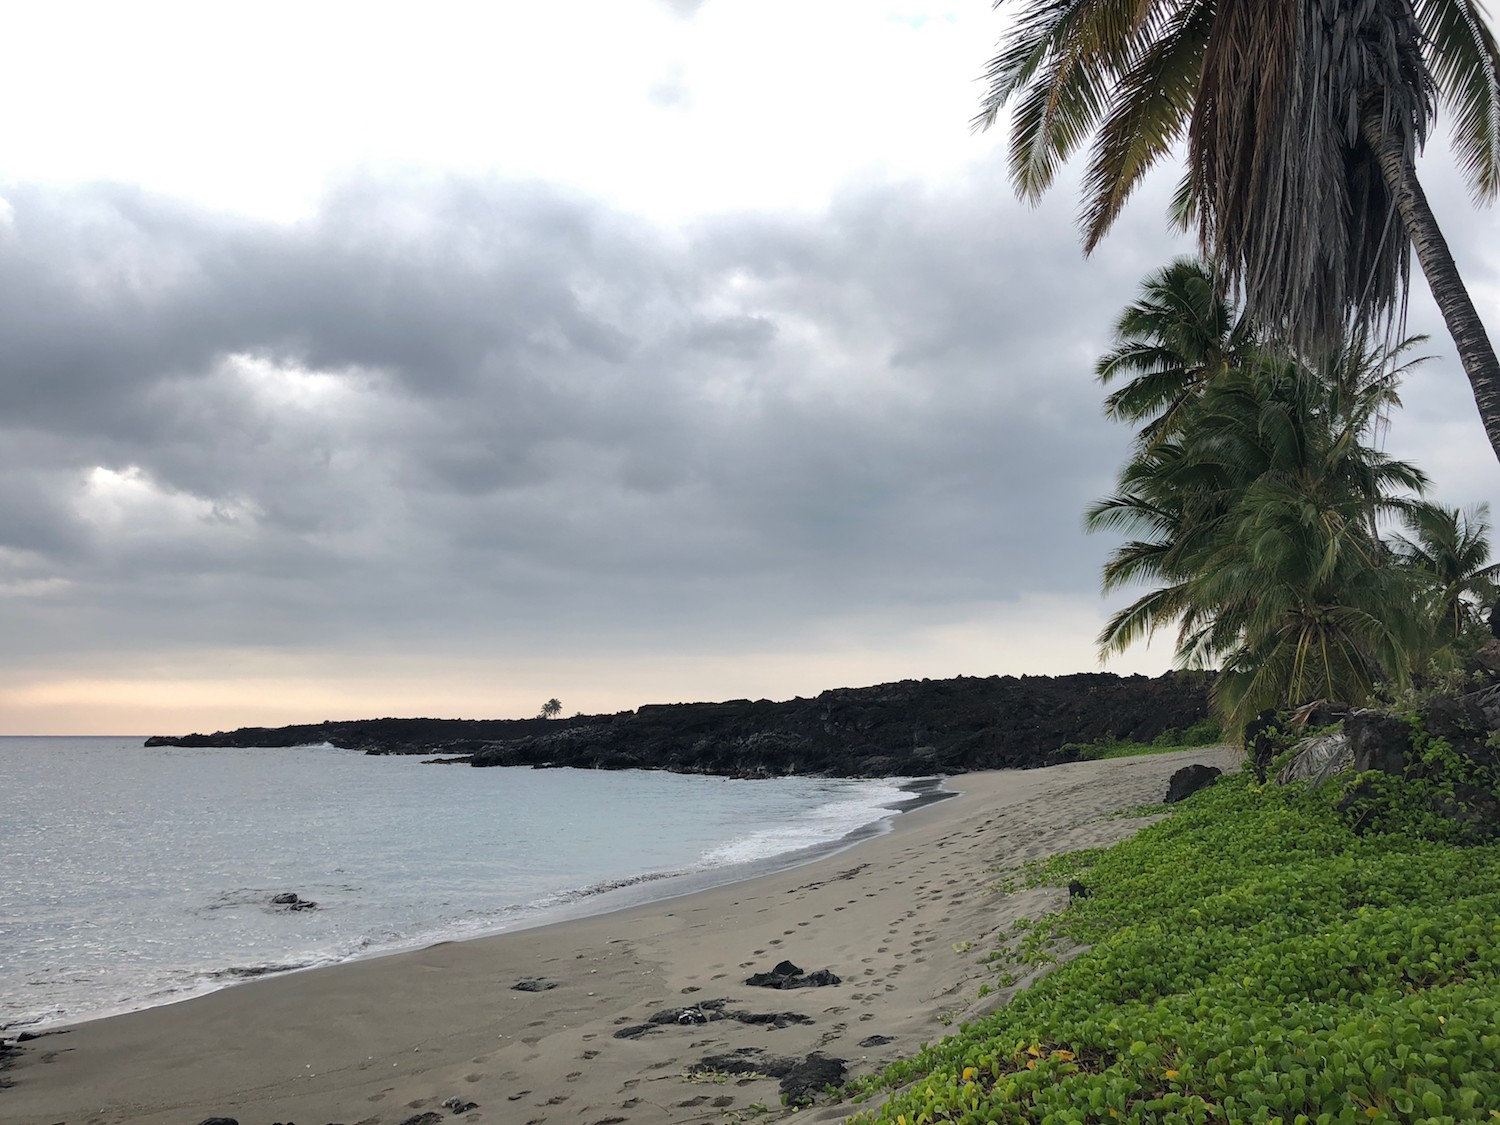 We were somewhat surprised but delighted to have the entire Pohue Bay to ourselves once we had finally made it.